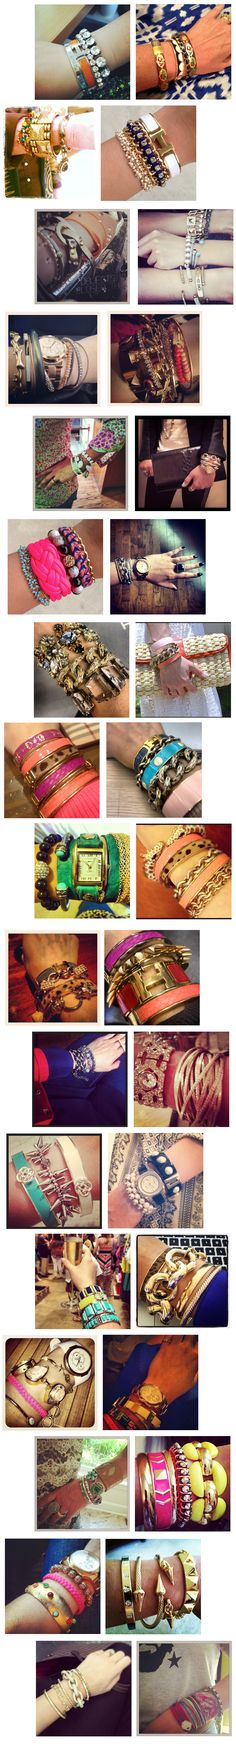 30+ arm party ideas!